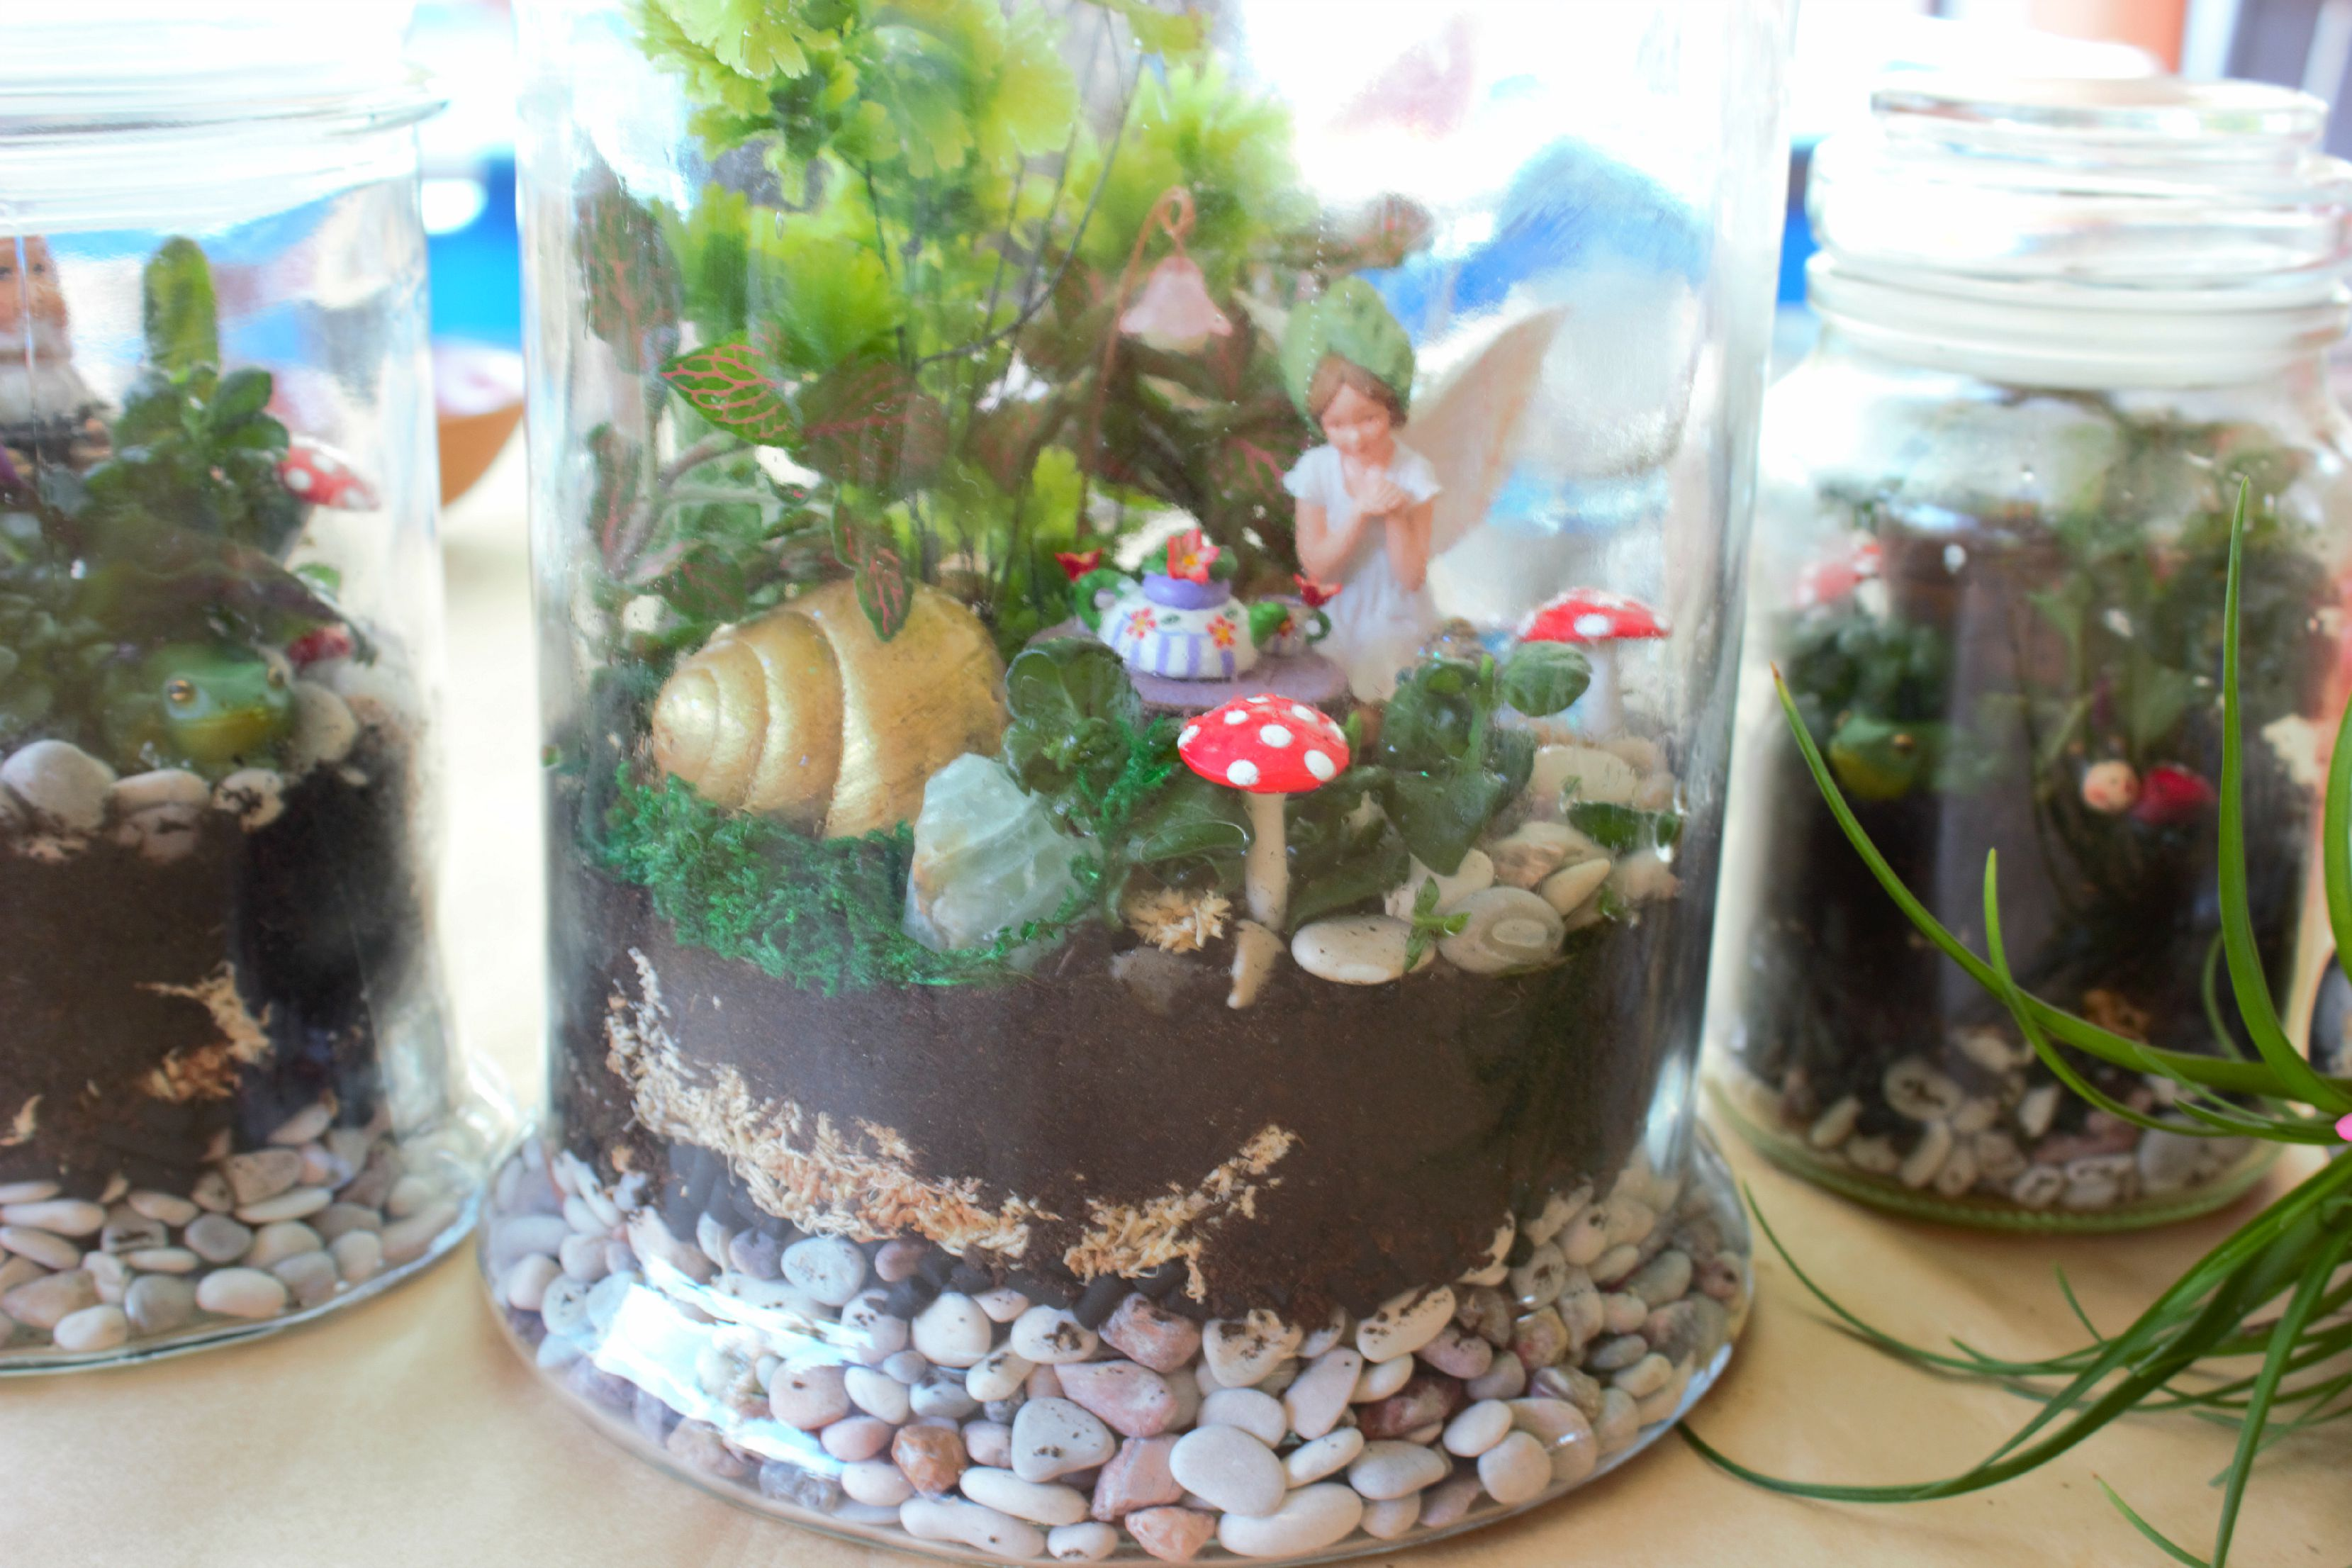 Lovely How To Start A Fairy Garden. How To Make A Terrarium Fairy Garden Start